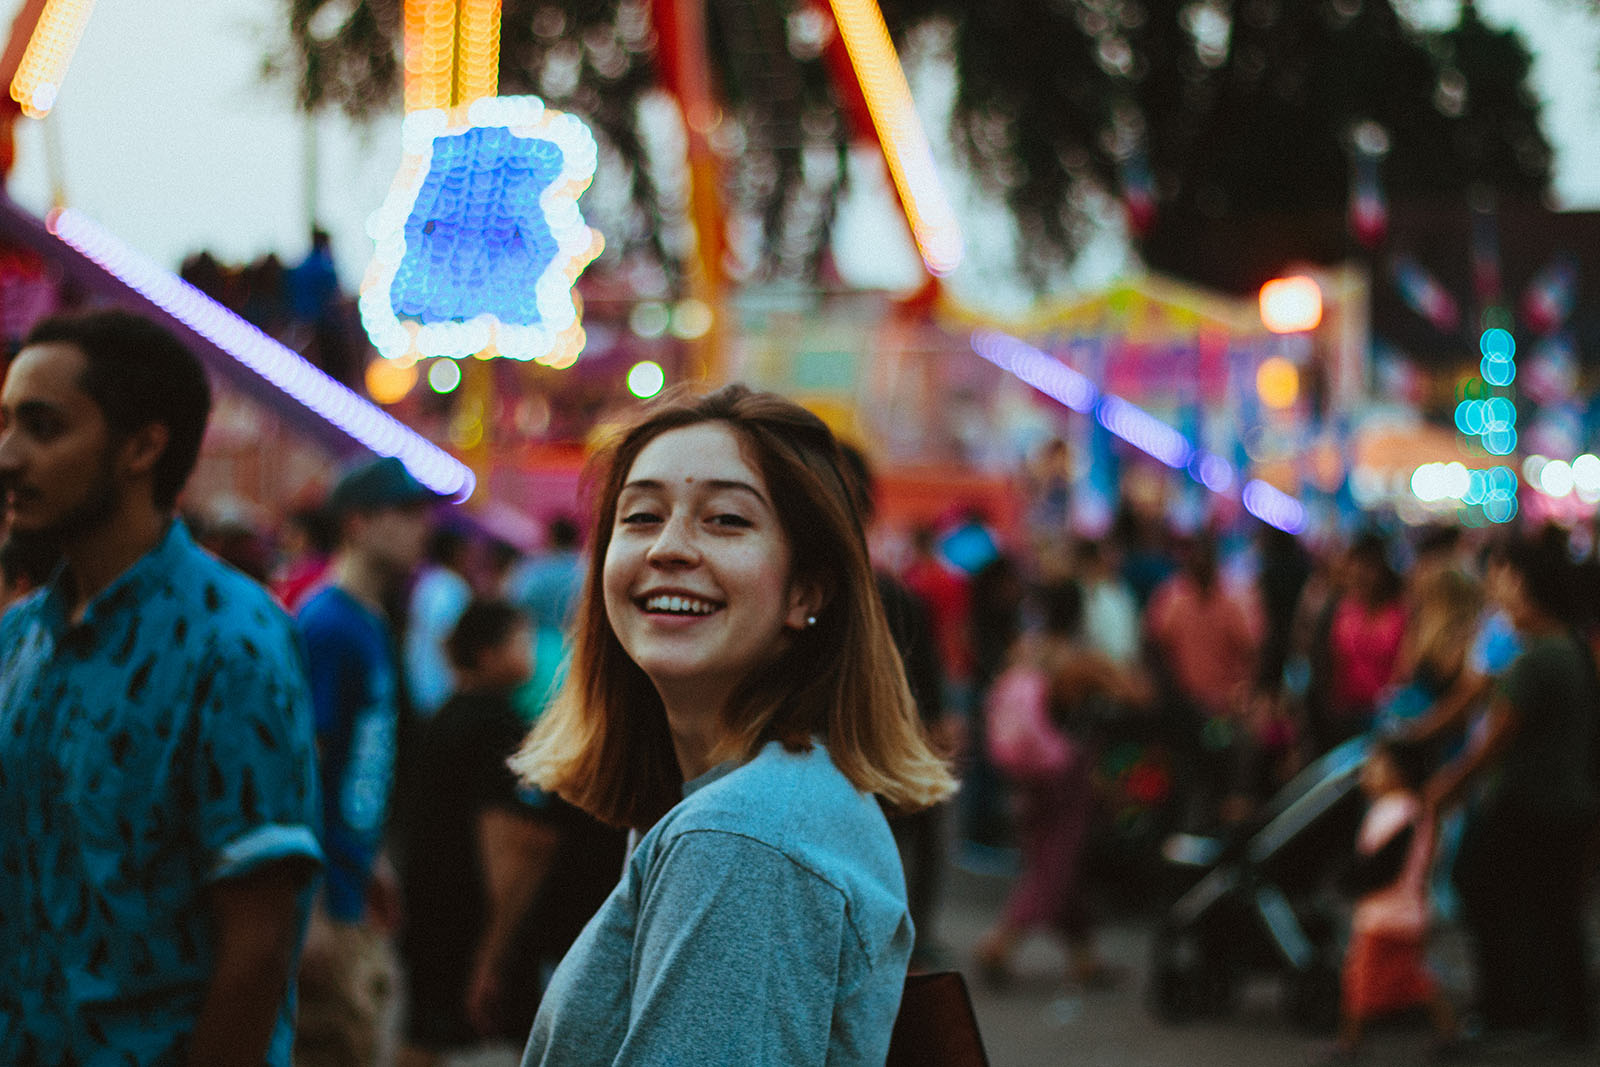 A portrait of Asia Cruz at the MN State Fair